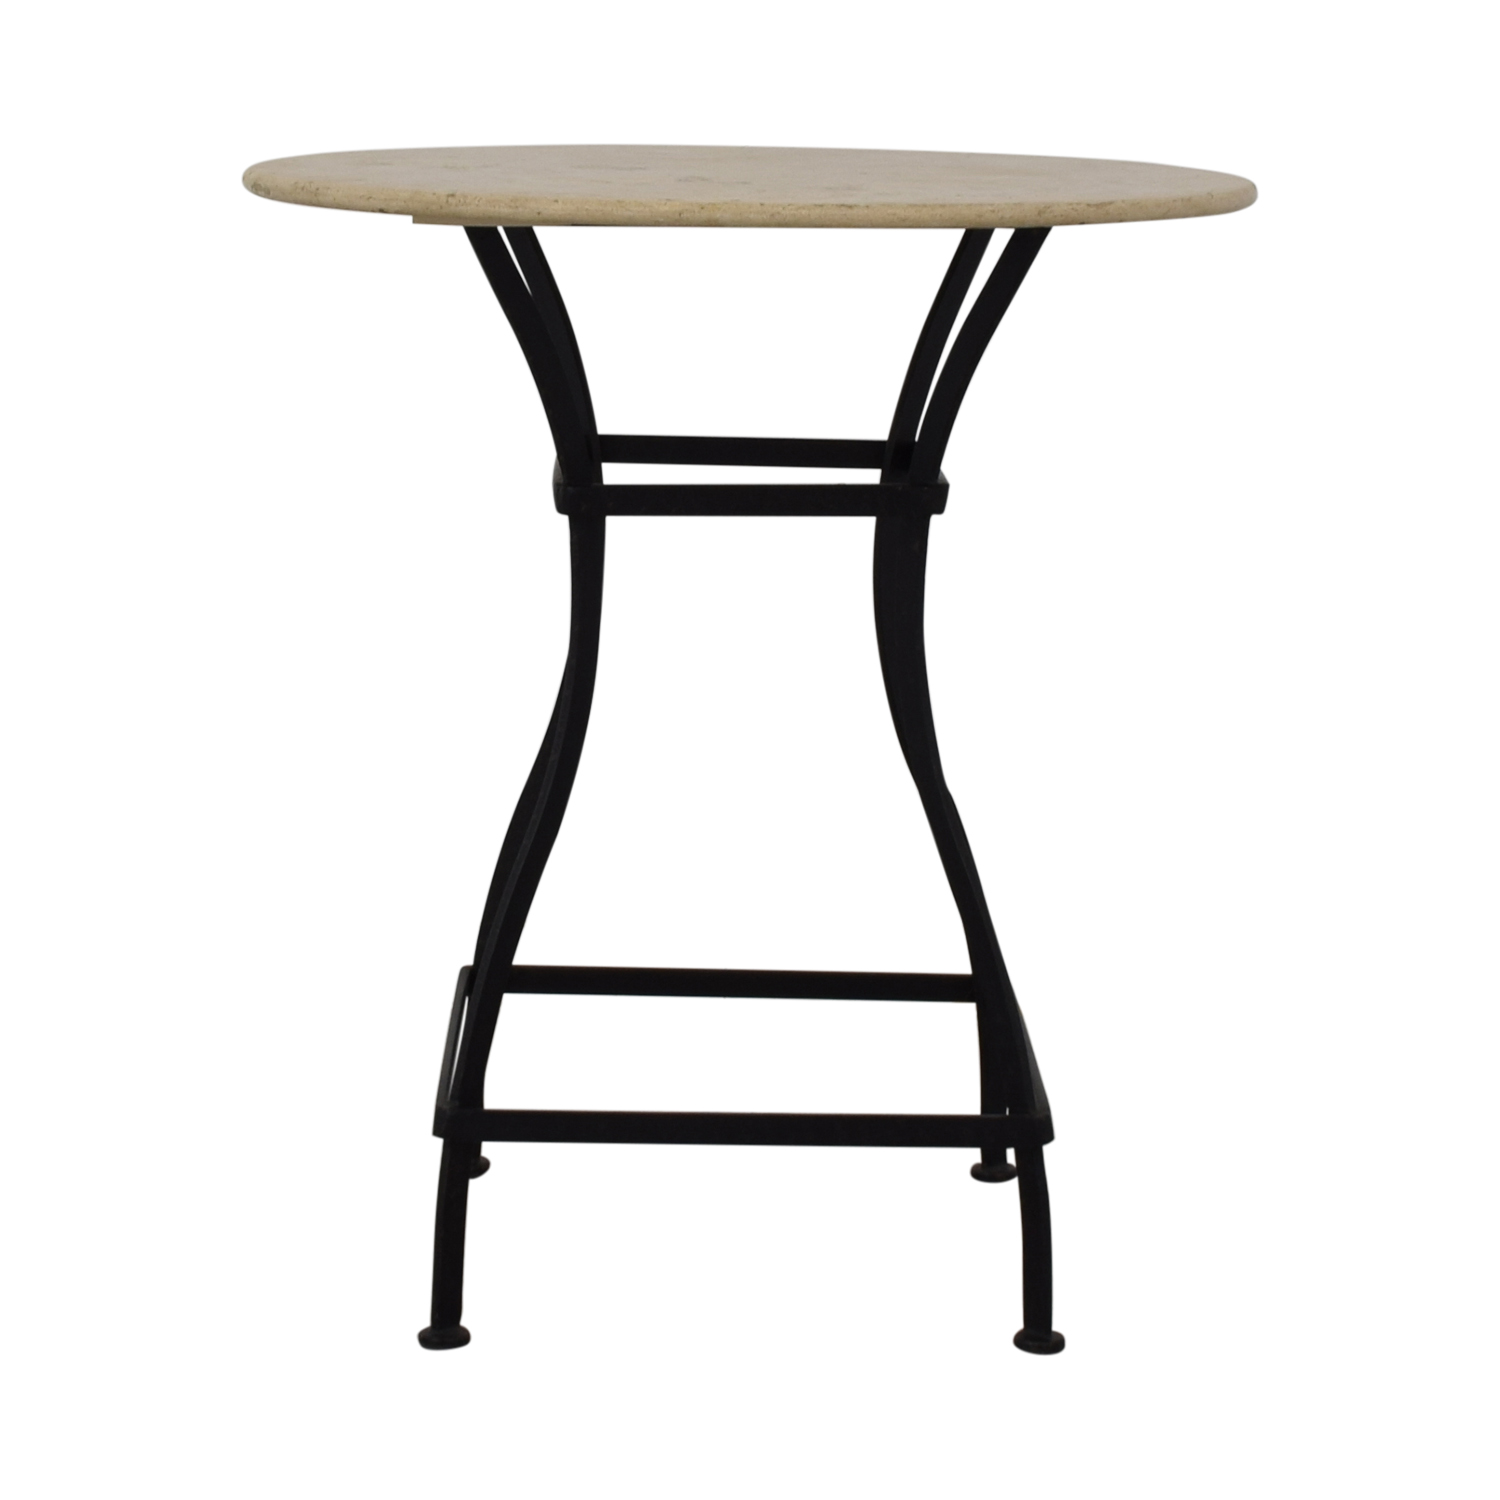 Crate & Barrel Crate & Barrel Bistro Table beige